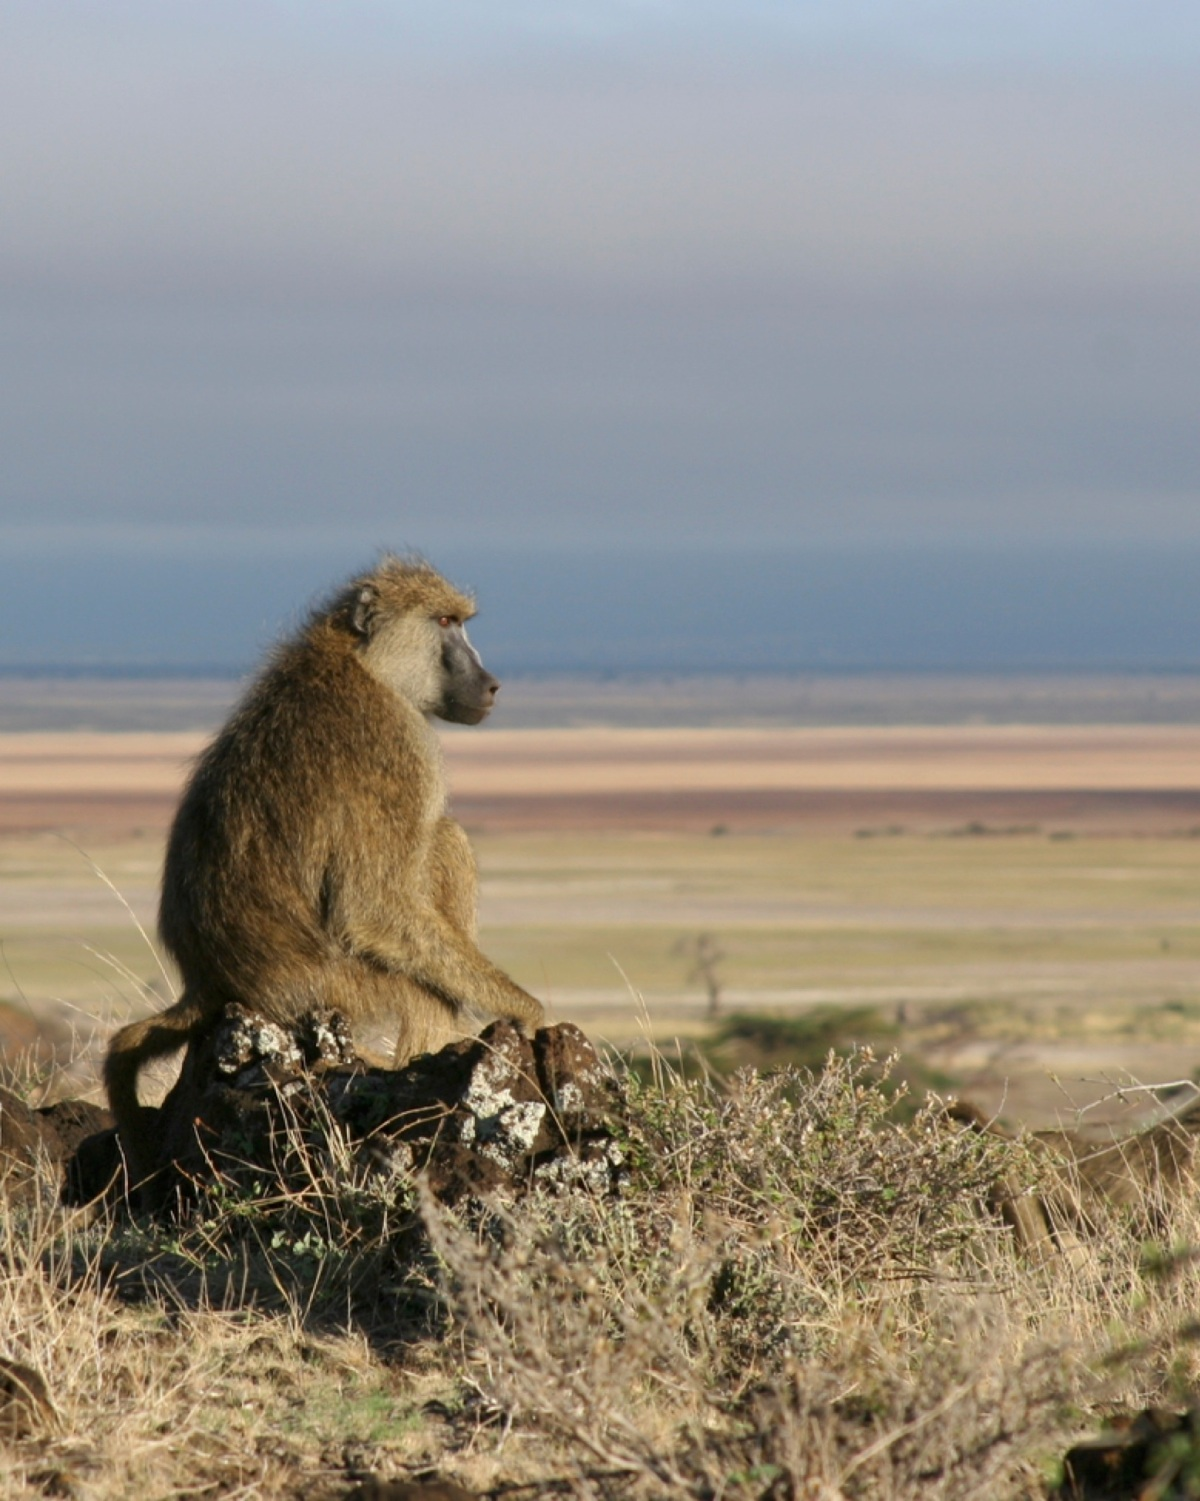 Article in focus: Group Living and Male Dispersal Predict the Core Gut Microbiome in Wild Baboons